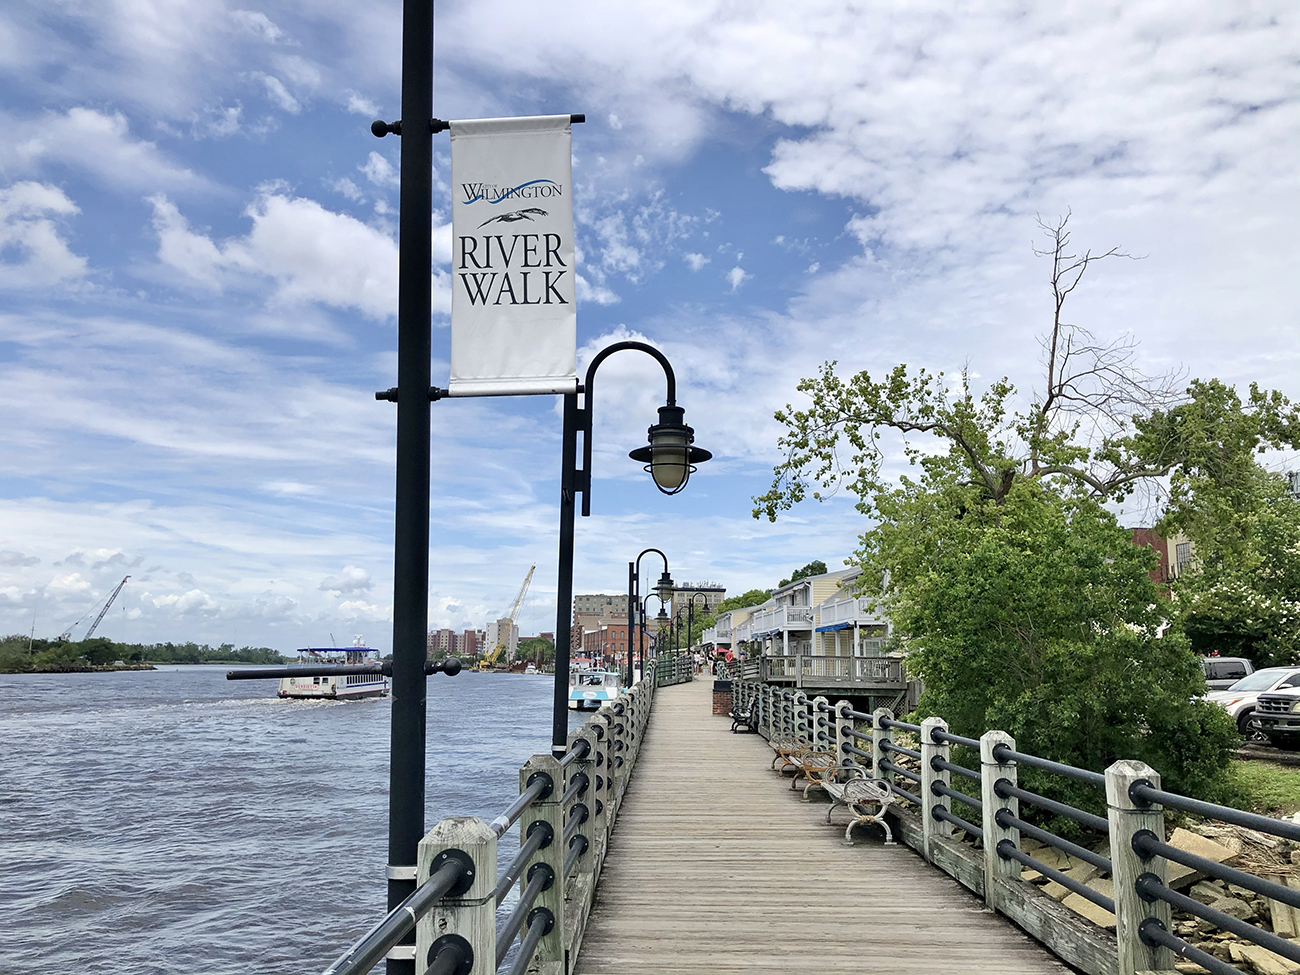 Coastal getaway: 48 things to do in Wilmington, 3.5 hours from Charlotte